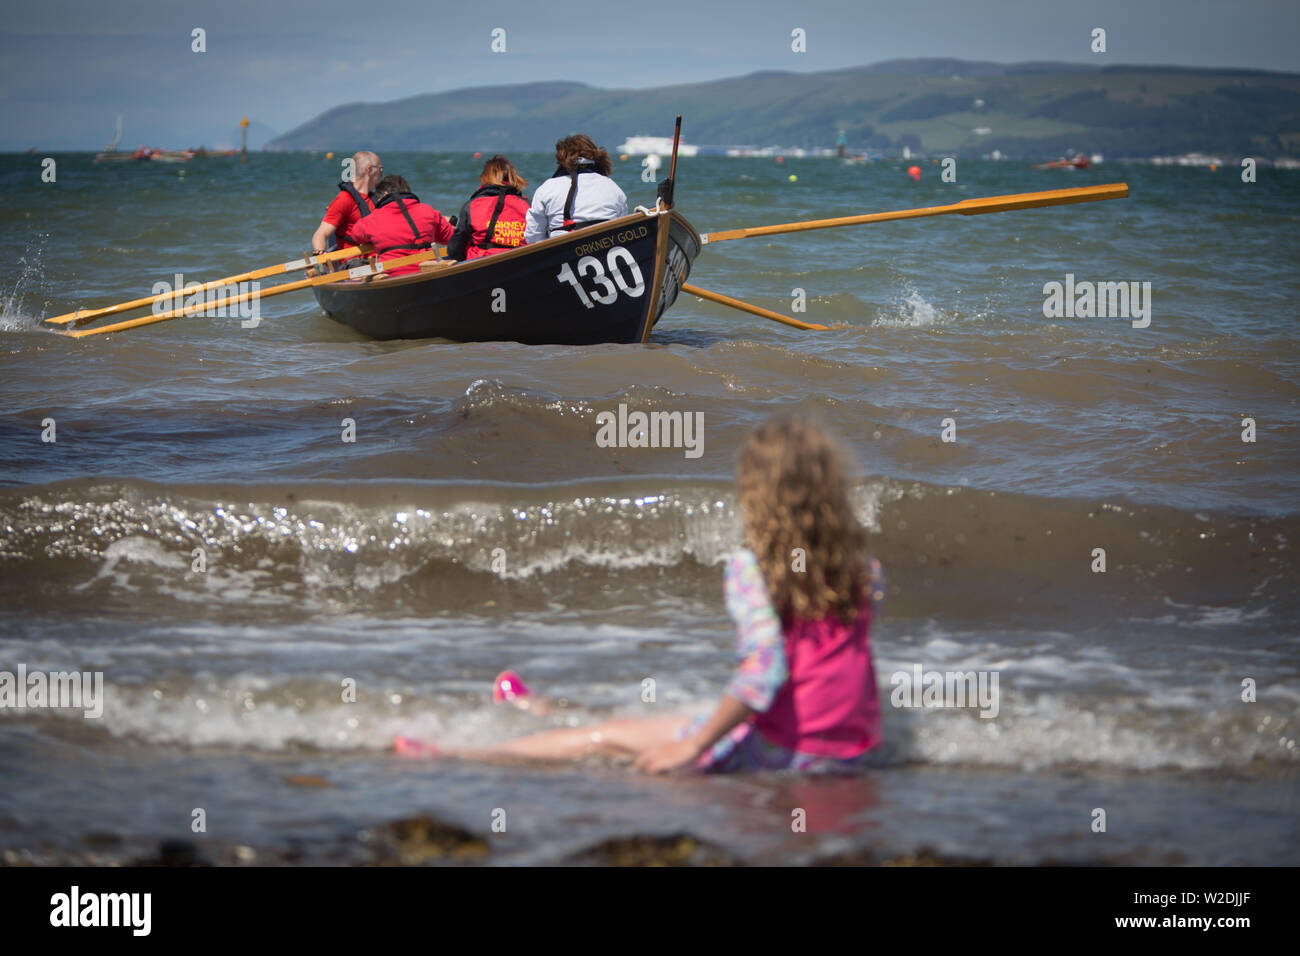 Stranraer, Scotland, UK. 7 July 2019. Competitors from around the country, and internationally, participate in the opening ceremonies of the Skiffieworlds 2019, which runs from 7th-13th July. Skiffieworlds is the World Championship for the St Ayles Skiff class of coastal rowing boat. The Championships are held every three years. Credit: Jeremy Sutton-Hibbert/ Alamy Live News - Stock Image